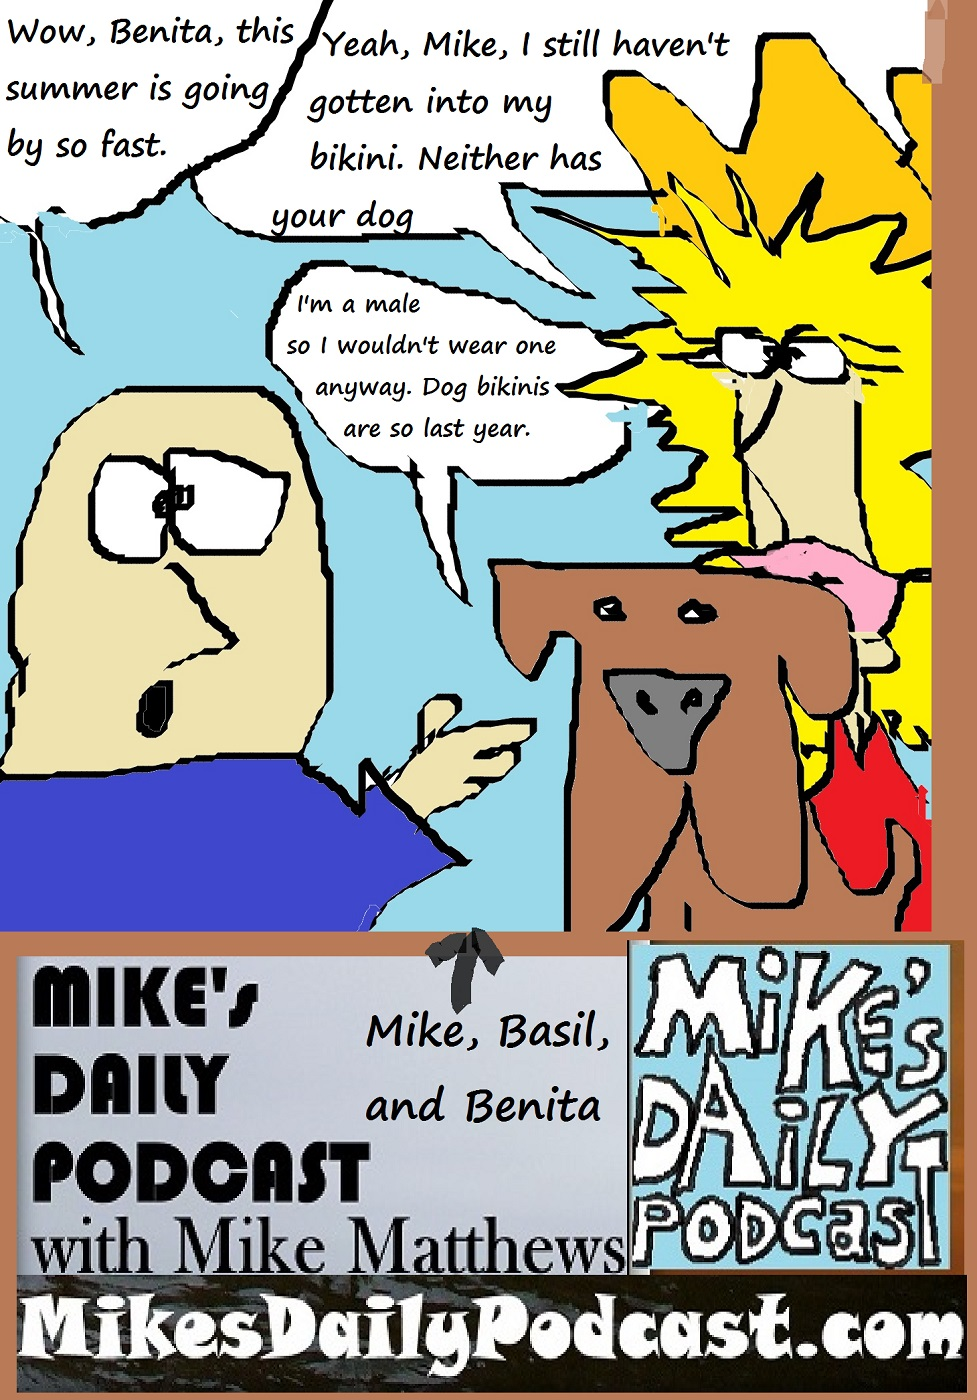 MIKEs DAILY PODCAST 1127 Benita Basil and Mike